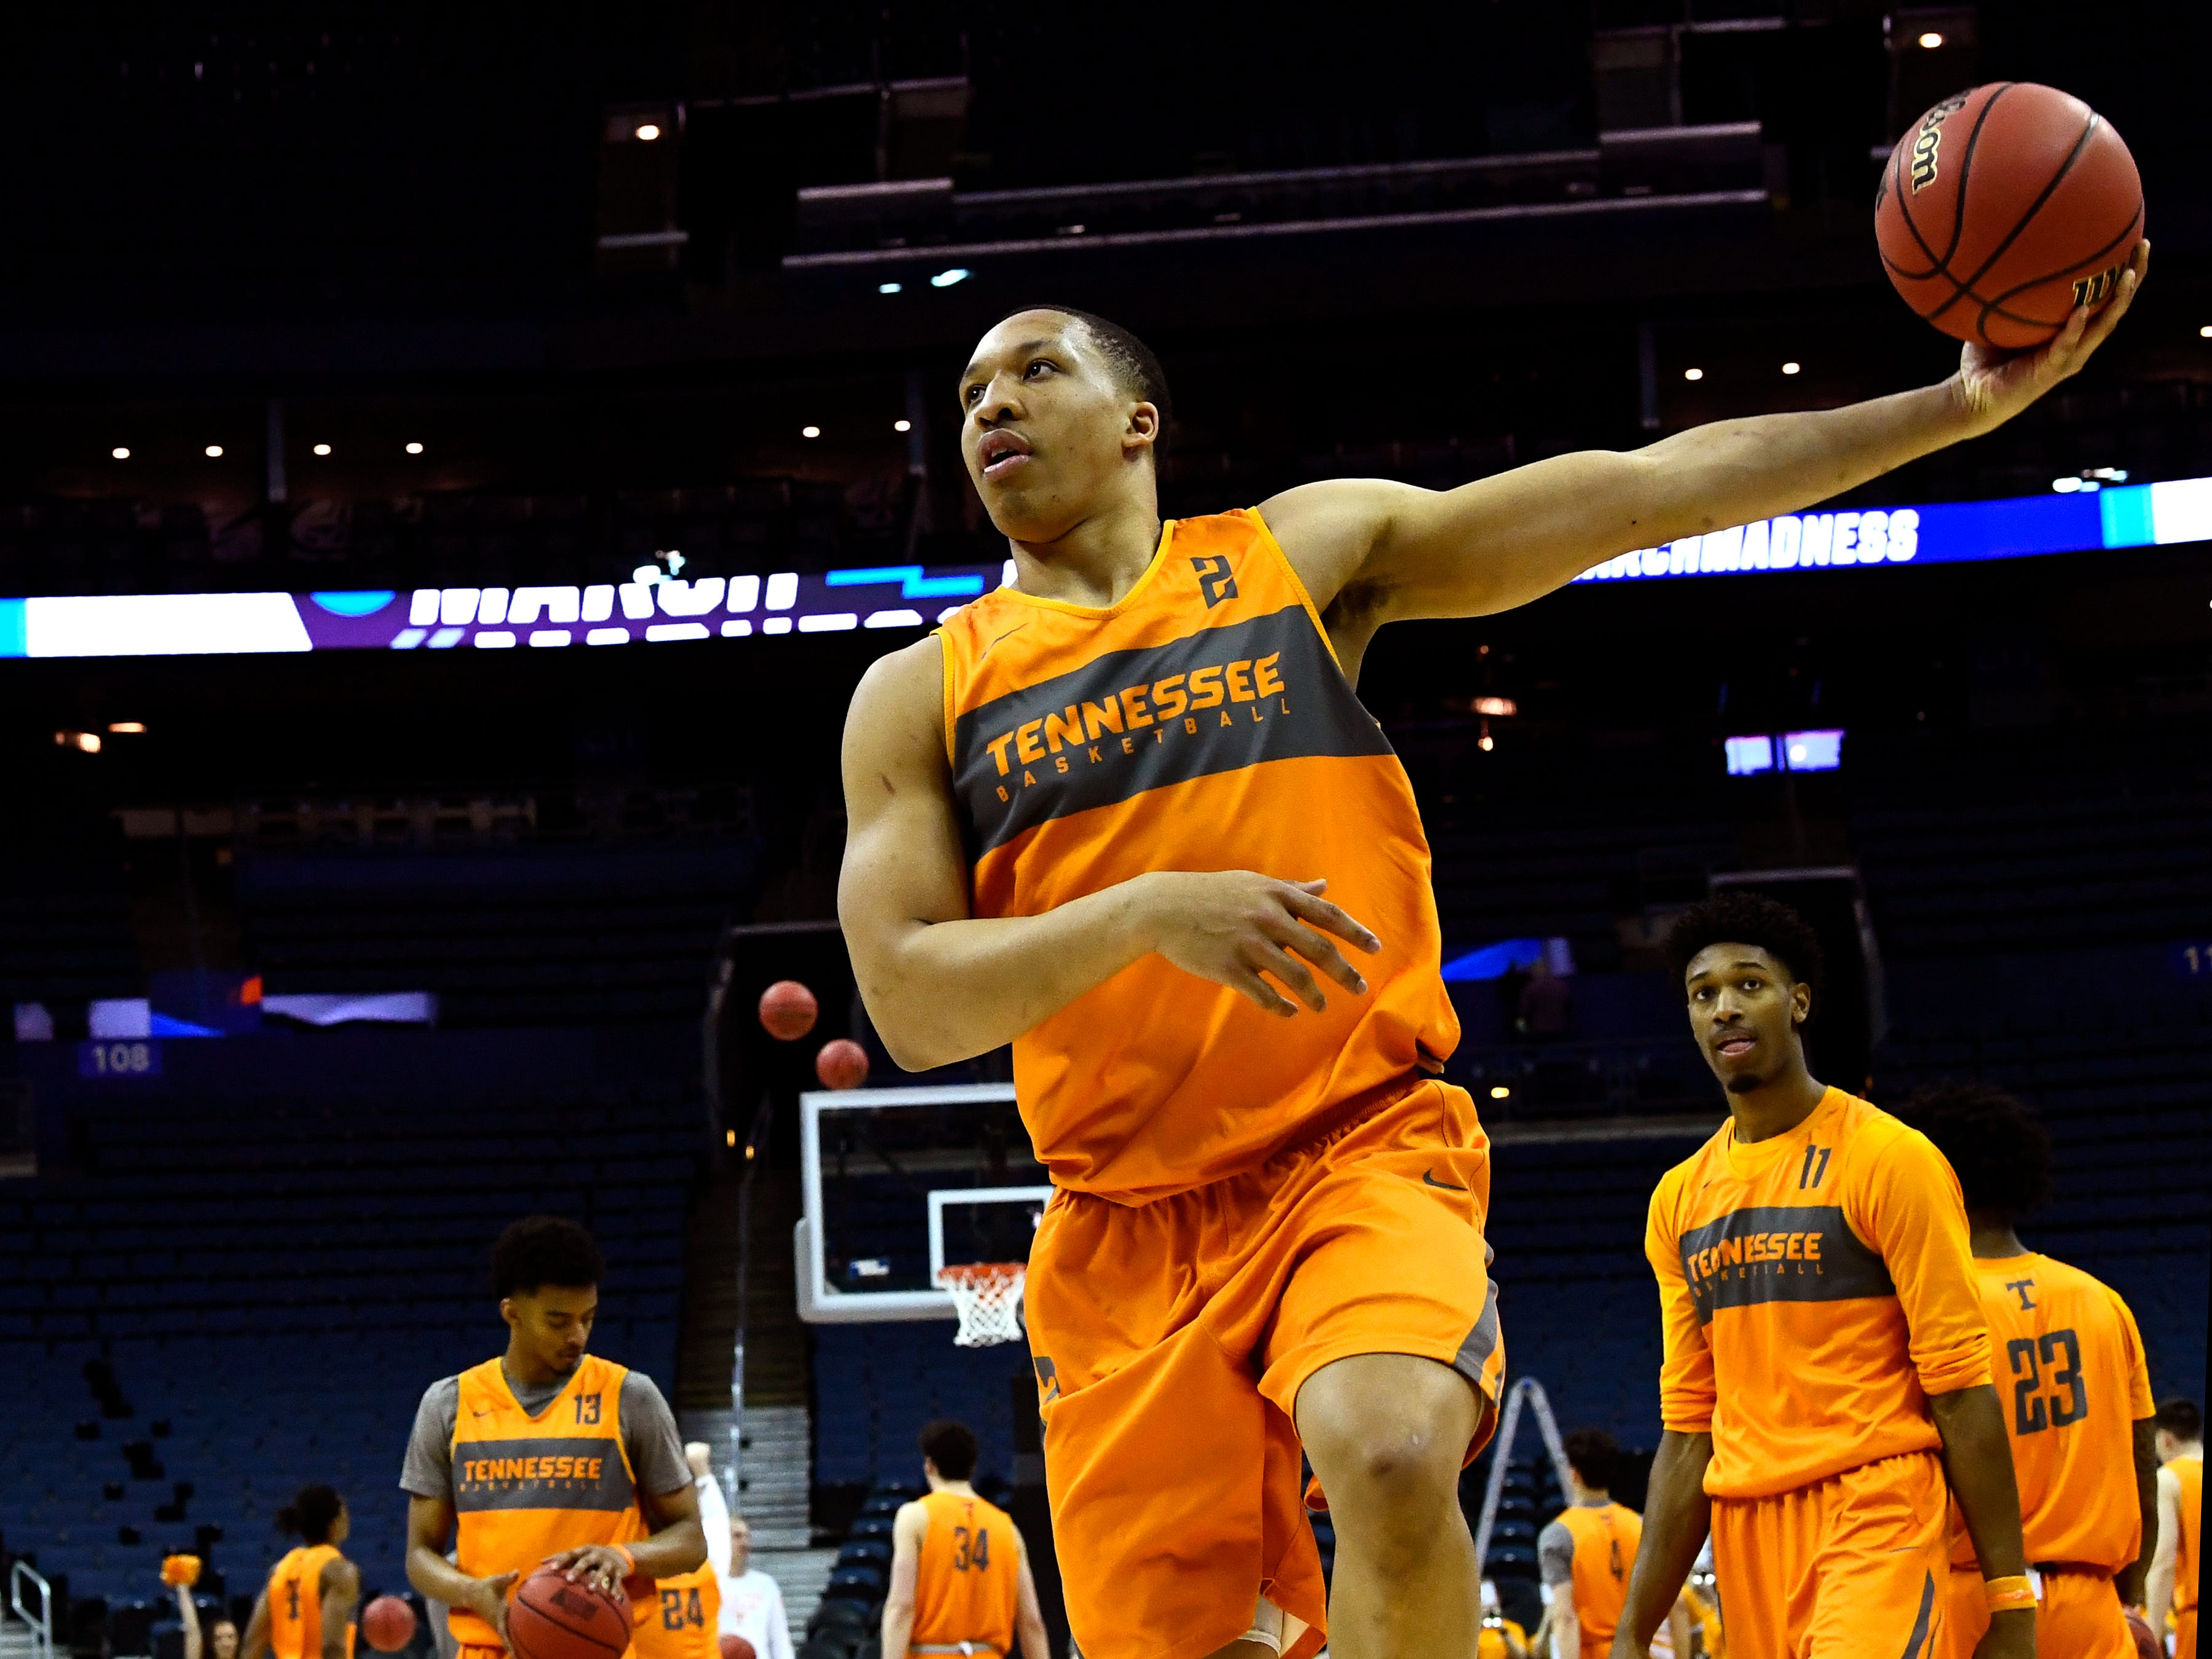 Tennessee forward Grant Williams (2) during Tennessee's practice on Thursday, March 21, 2019, before their first round NCAA Tournament game against Colgate at Nationwide Arena in Columbus, Ohio.